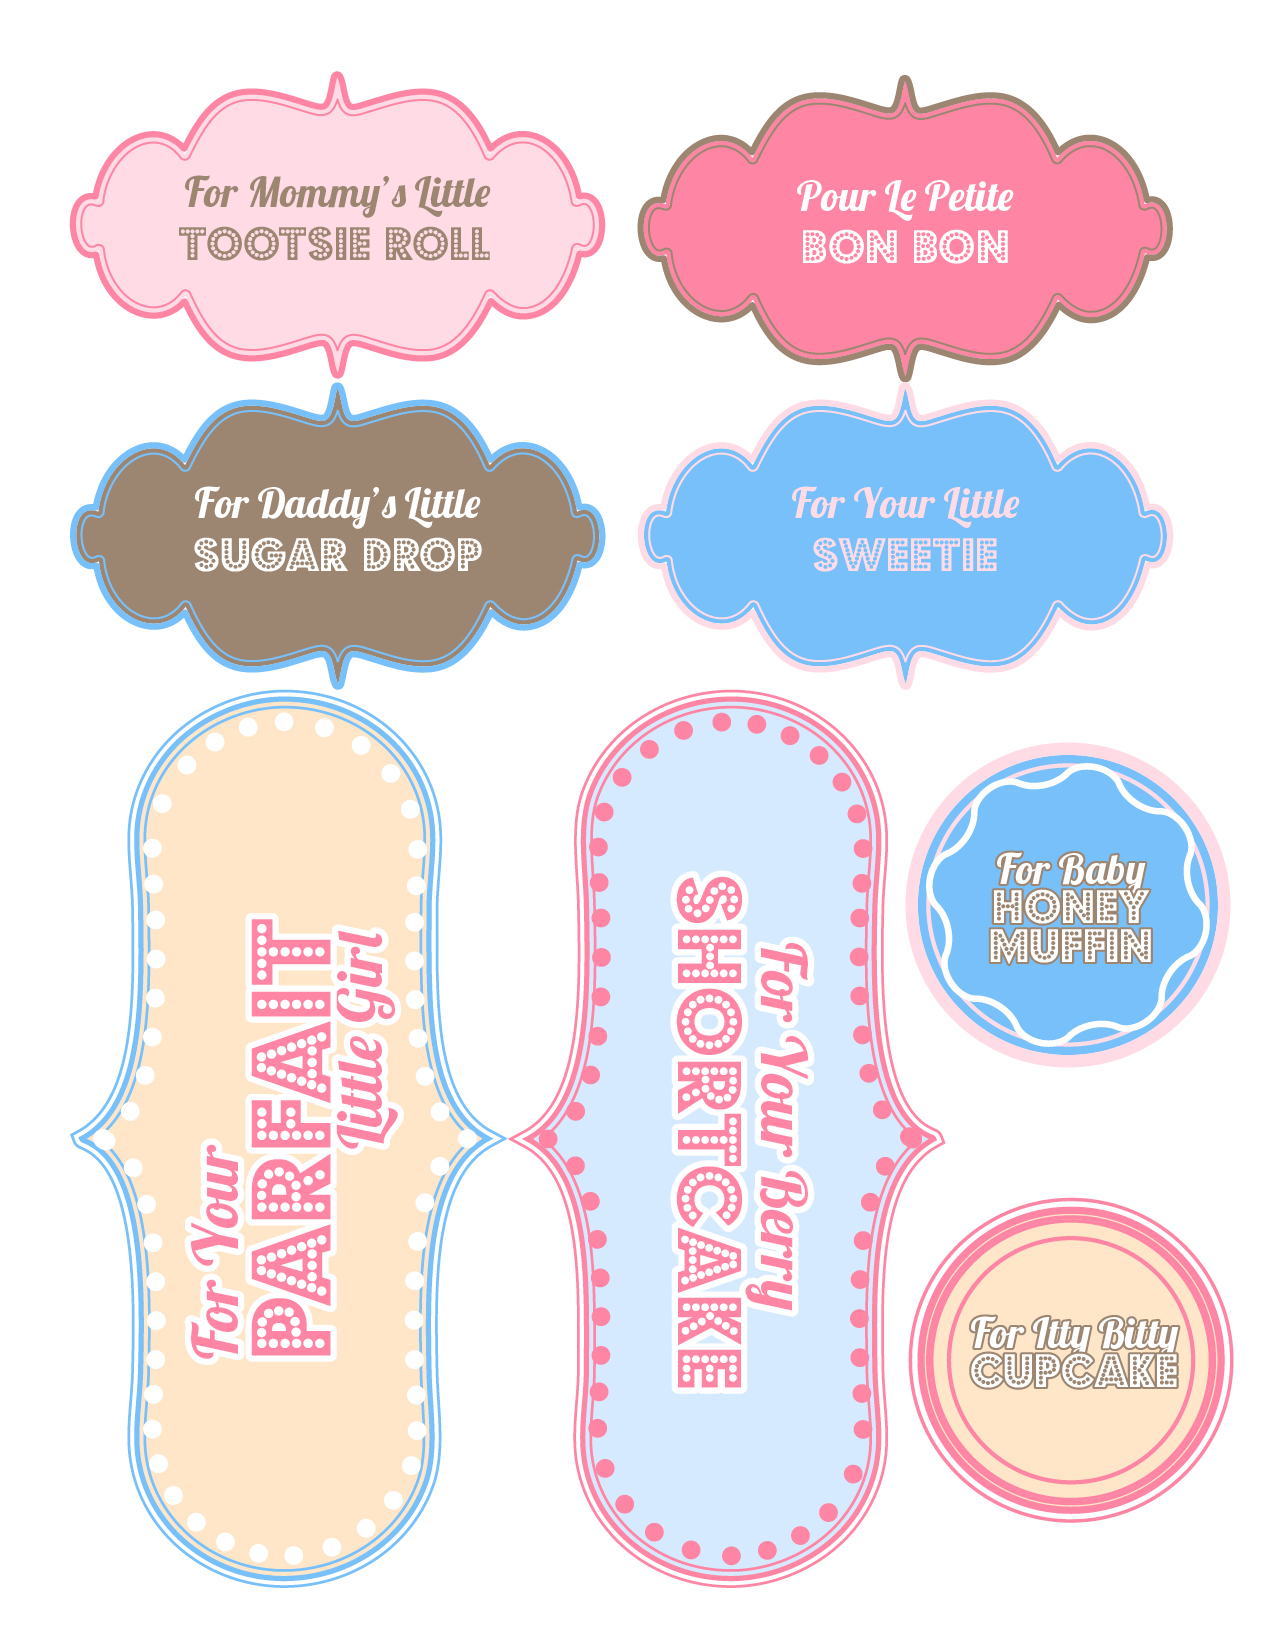 Baby Shower Gifts Free Printable Sweet Anne Designs - Cupcake name tag template